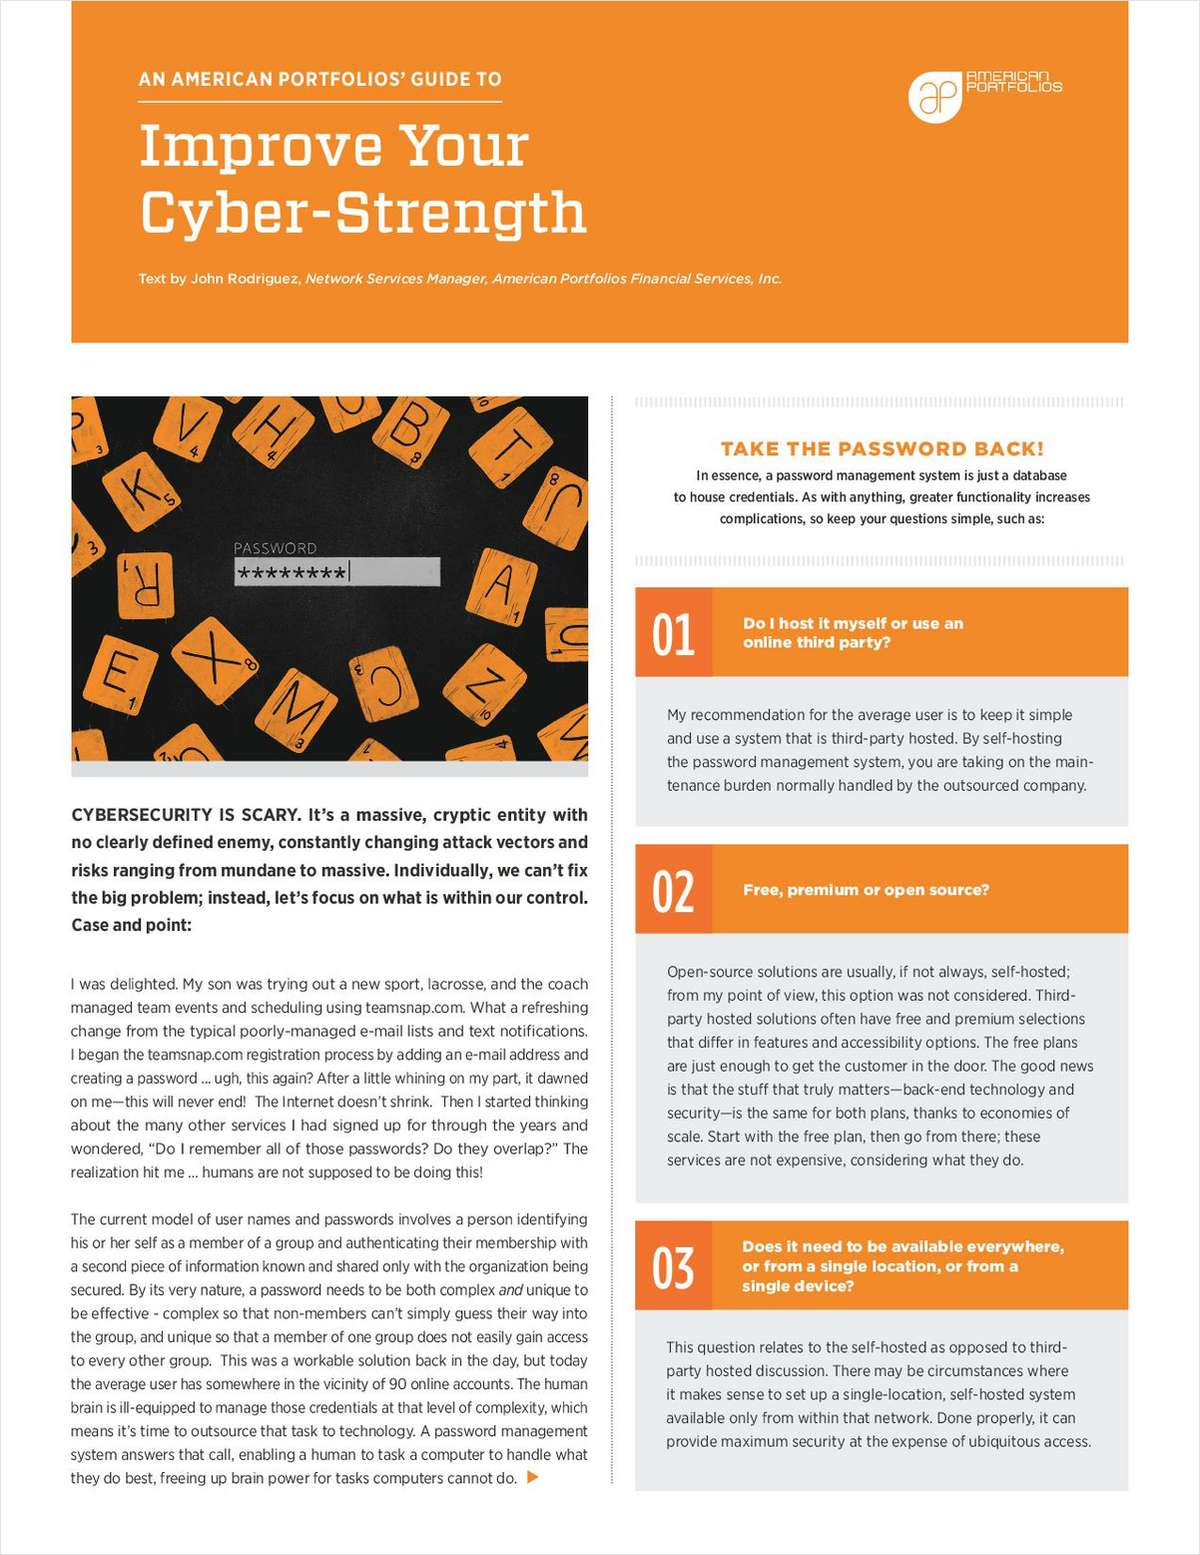 Tips to Improve Your Cyber-Strength